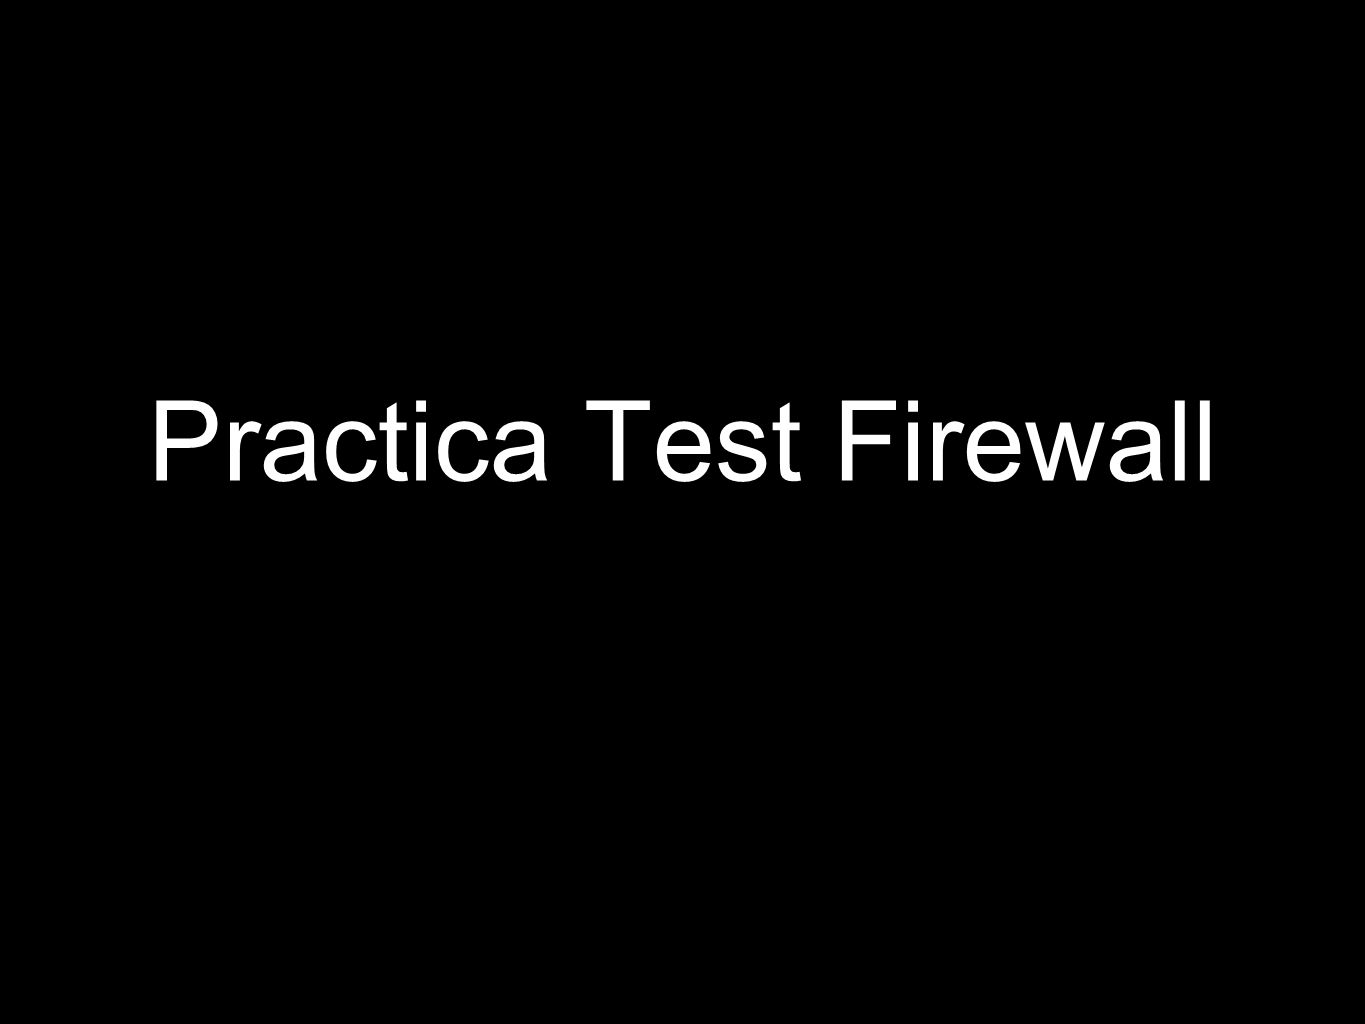 Practica Test Firewall